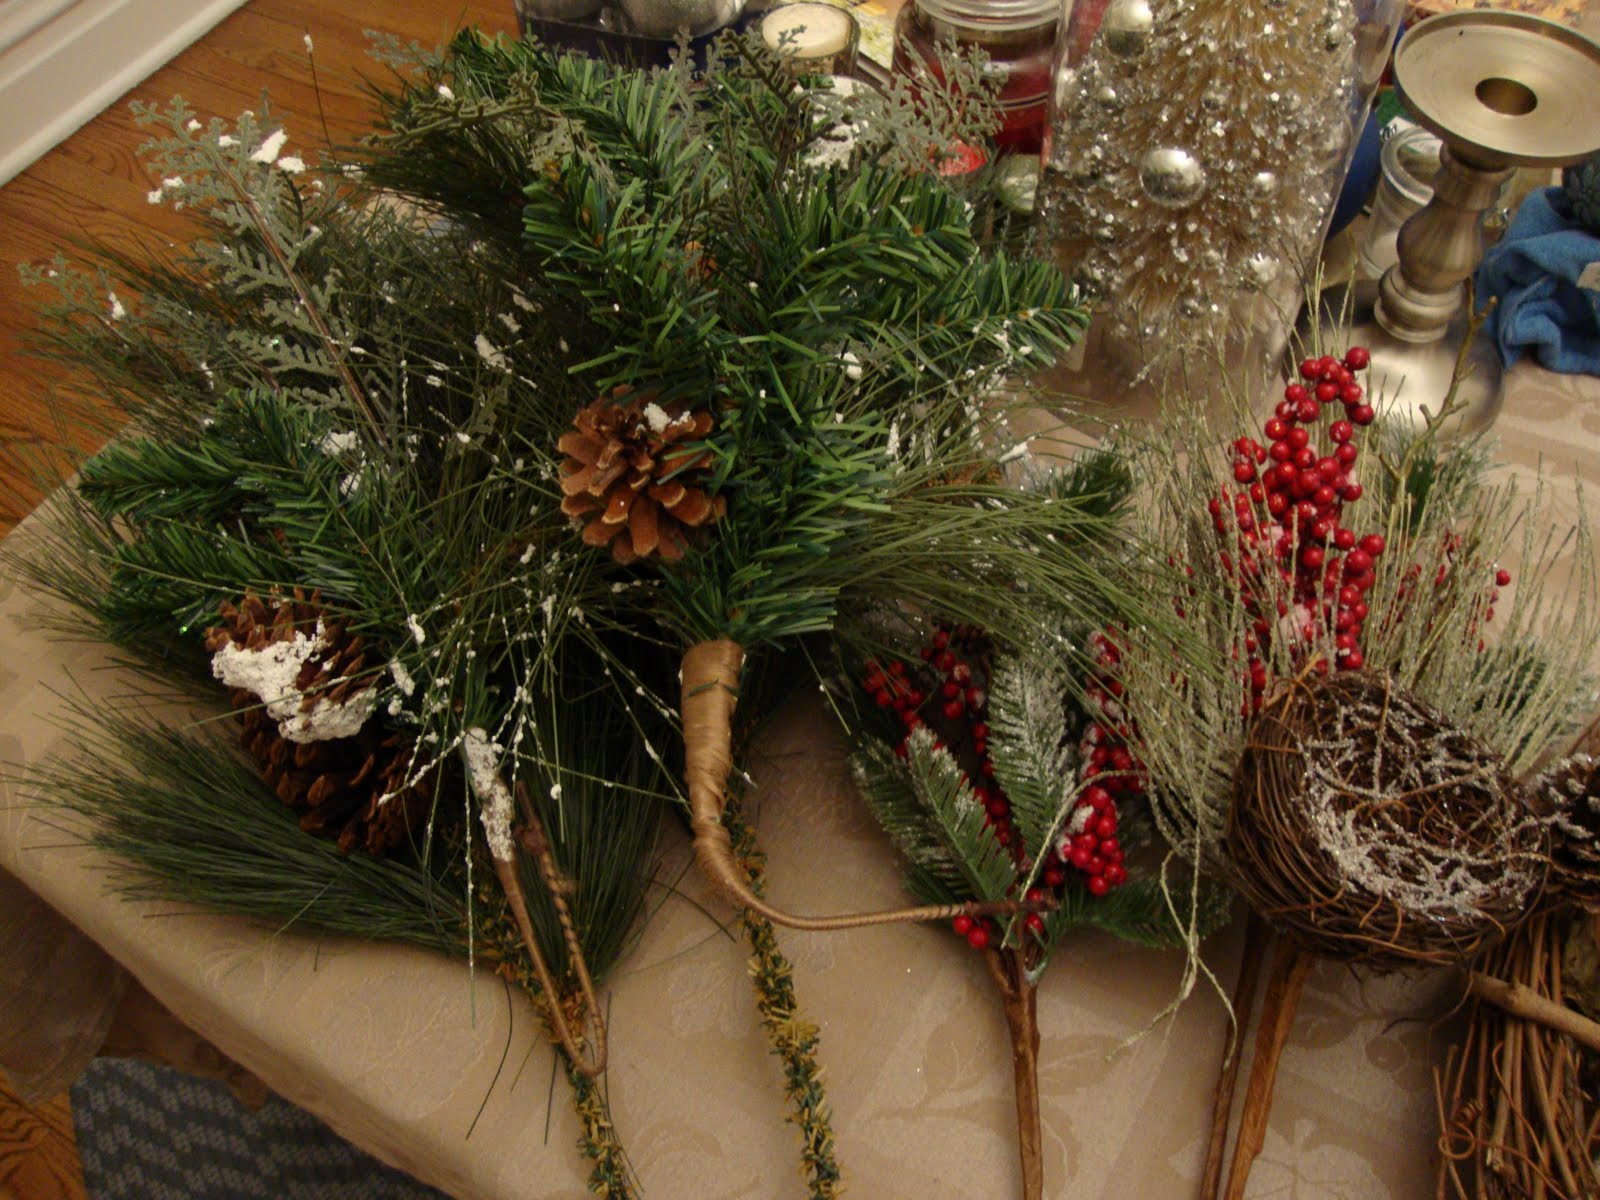 i placed several different picks on the wreath at different angles and decided to keep it simple with these 2 picks pretty green pine boughs with some - Hobby Lobby Christmas Wreaths